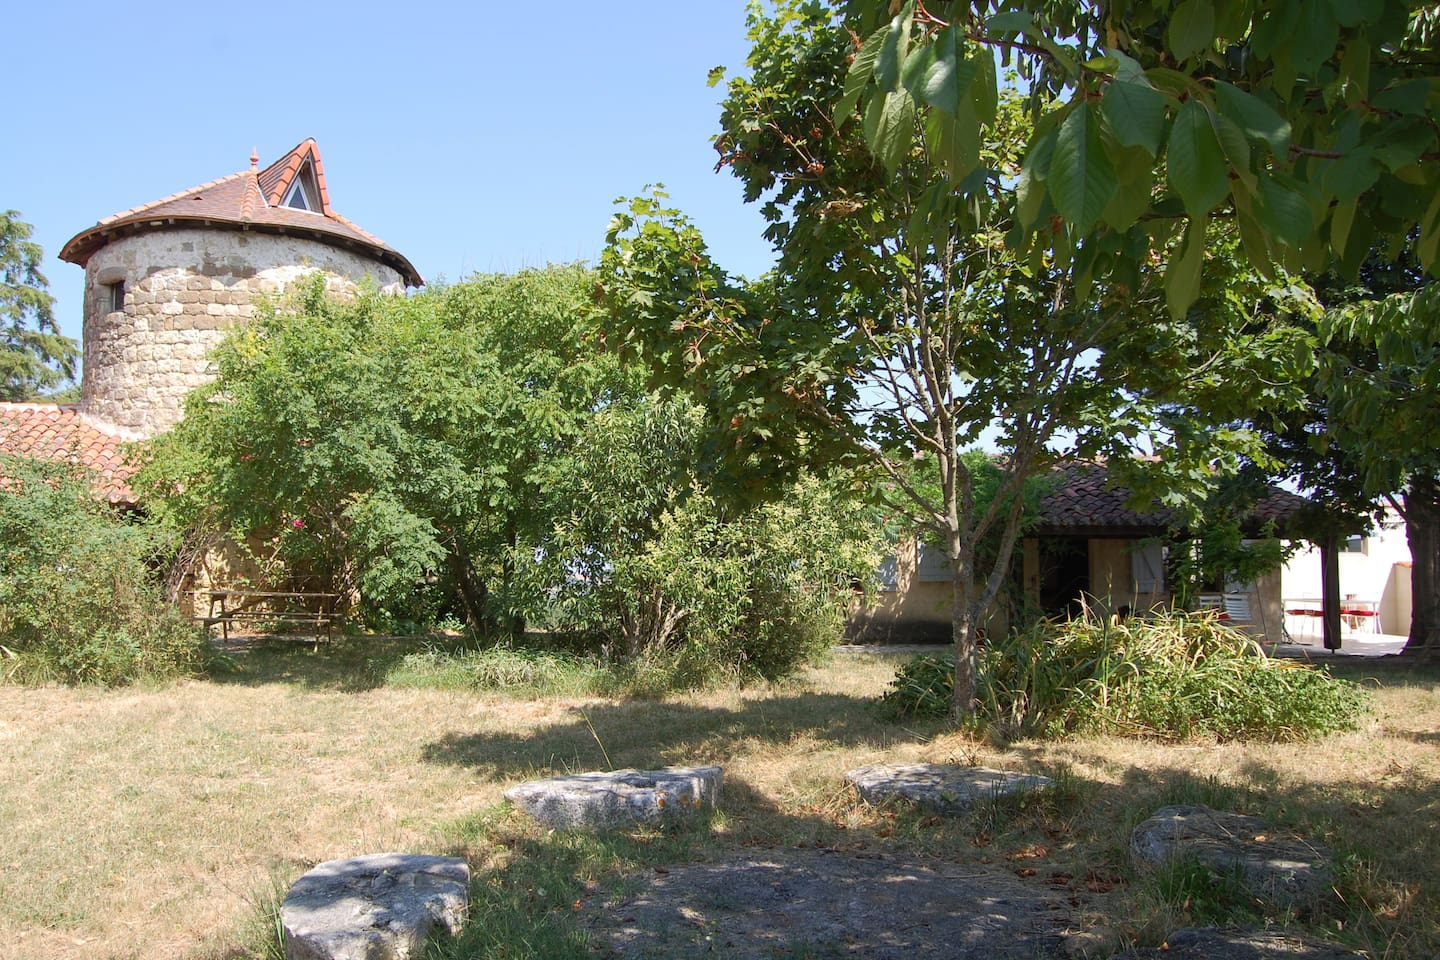 House on the right with garden area, mill on the left is also available, see other ad.